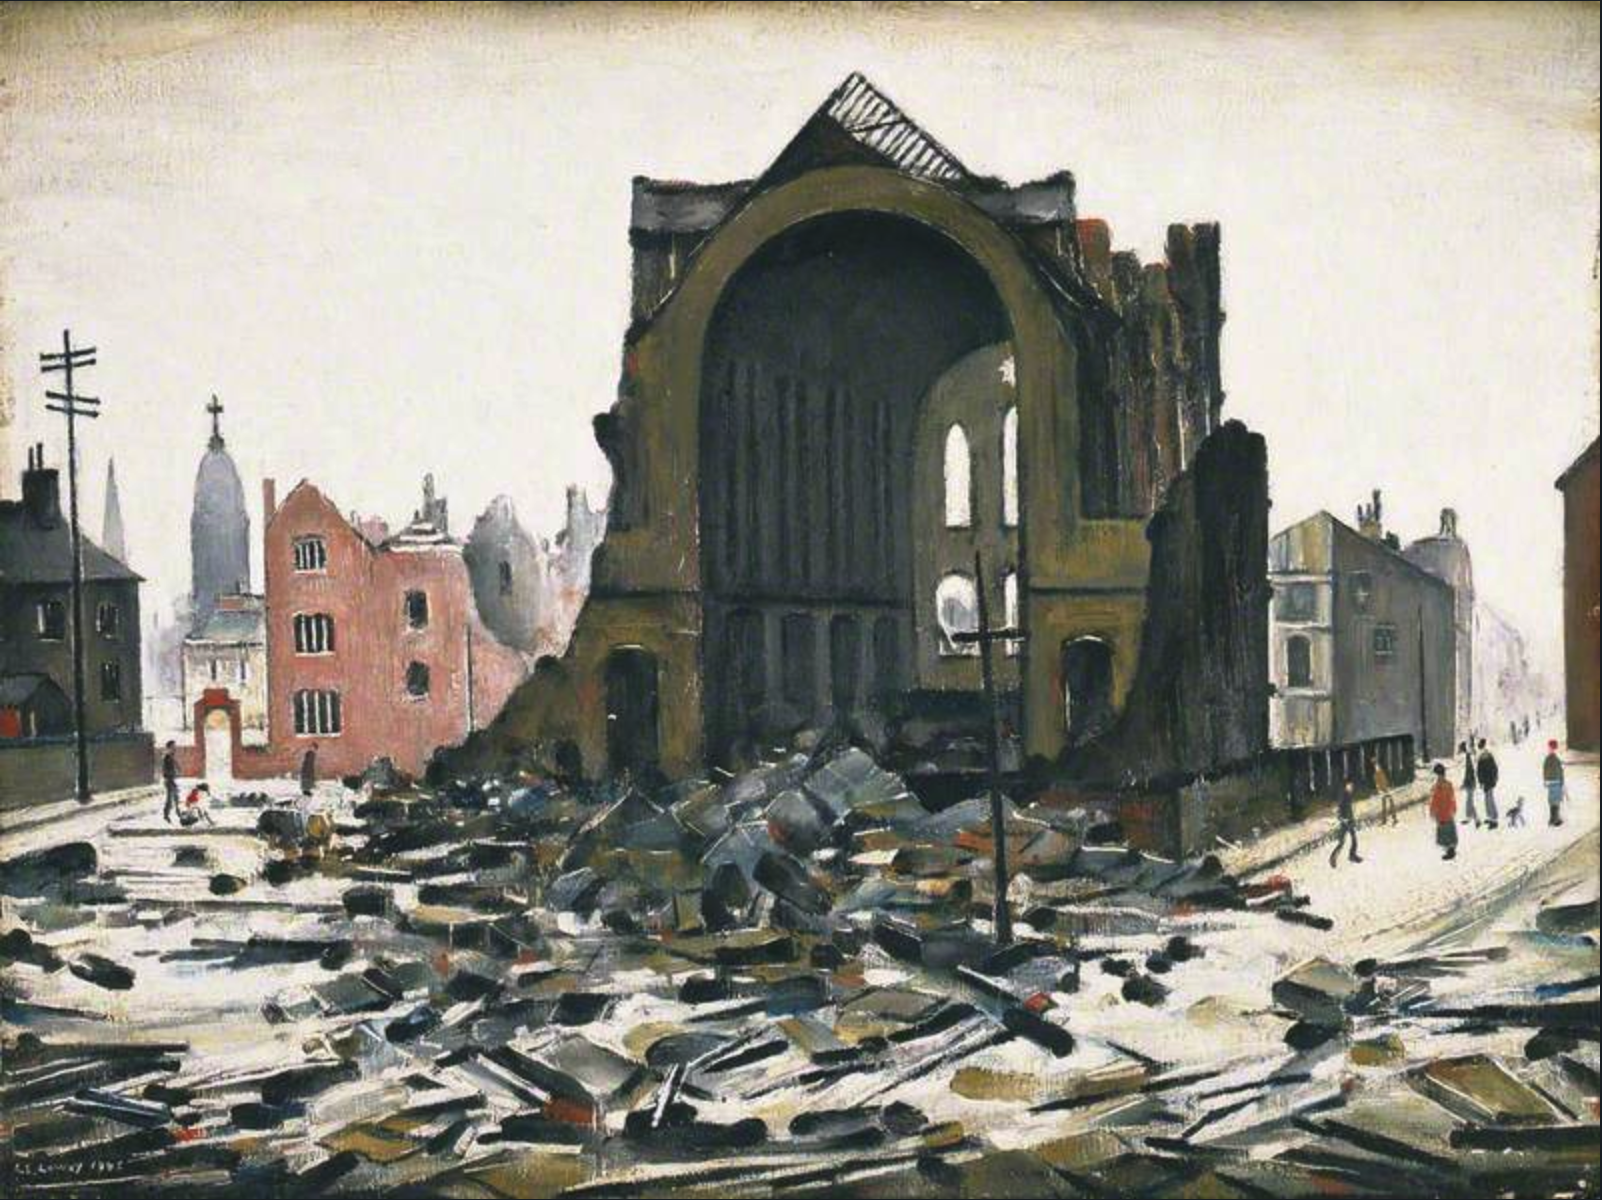 St Augustine's Church, Manchester (1945) by Laurence Stephen Lowry (1887 - 1976), English artist.